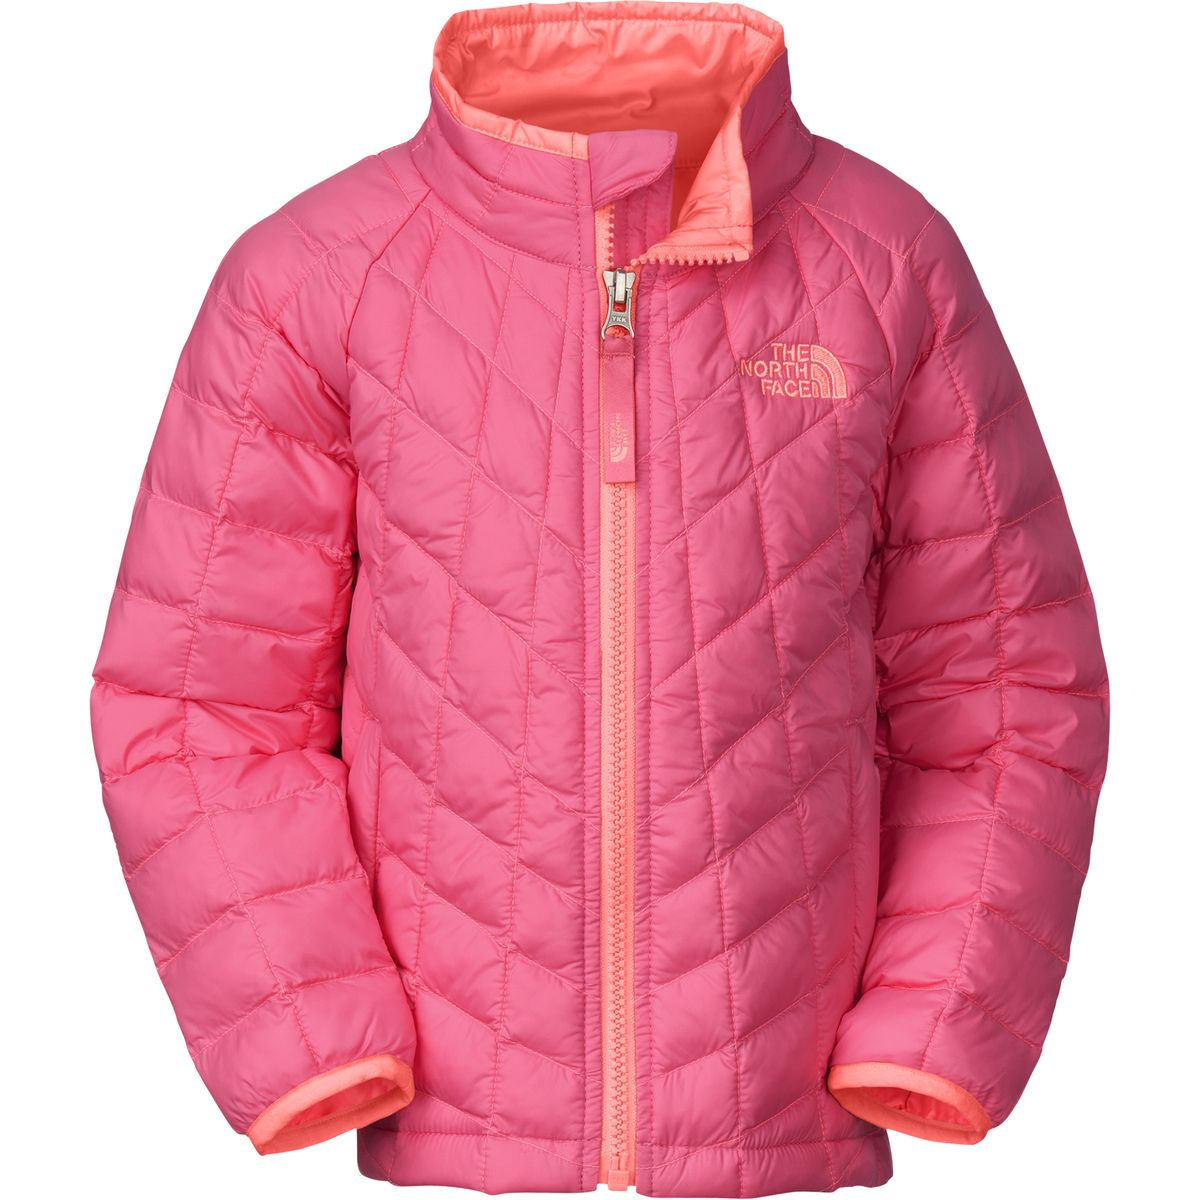 The North Face Thermoball Full-Zip Jacket - Toddler Girls